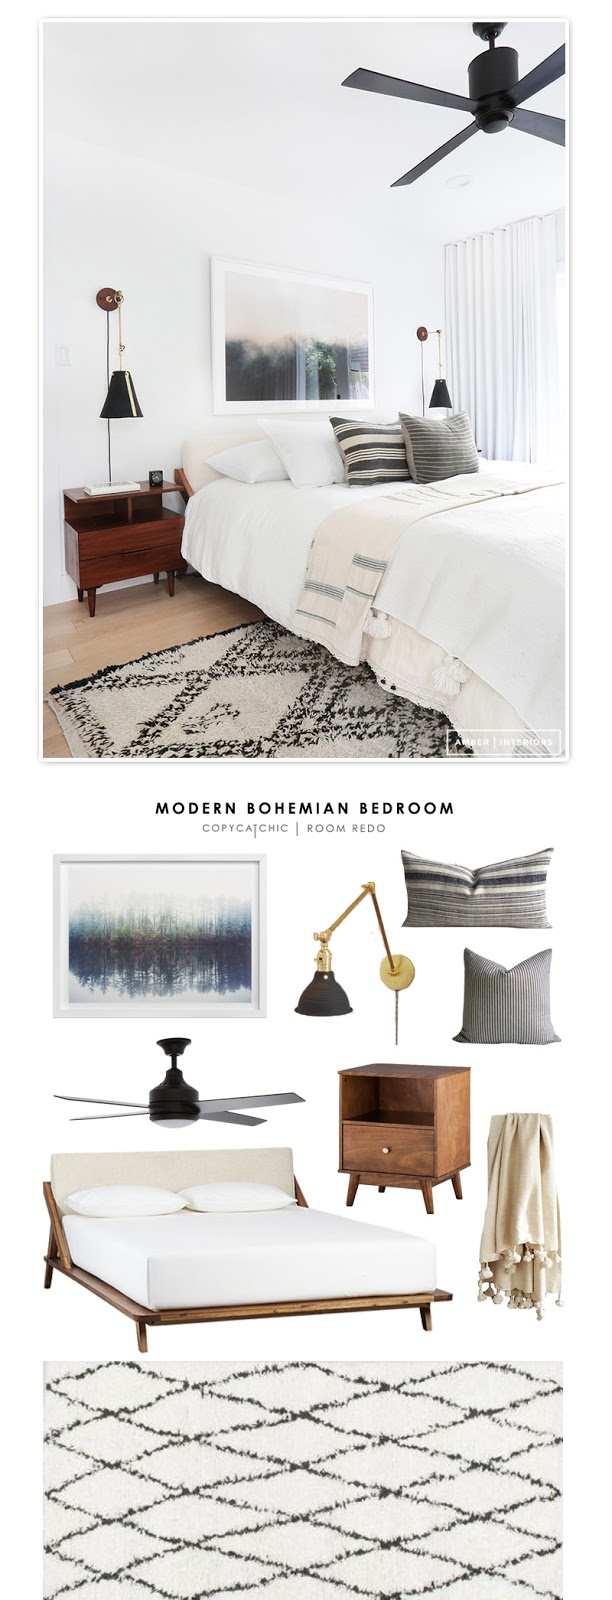 Copy Cat Chic Room Redo Modern Bohemian Bedroom Copycatchic